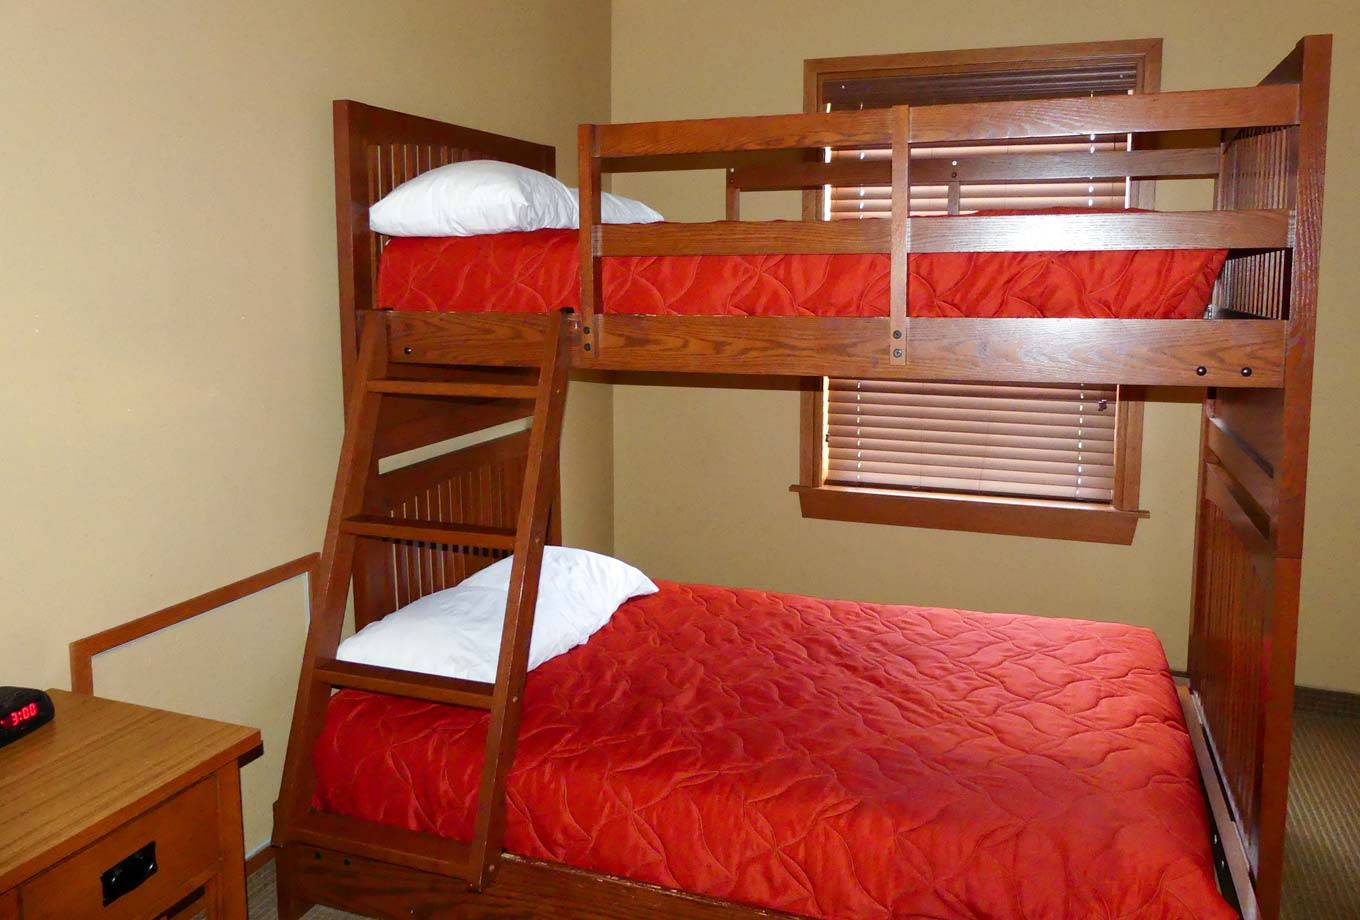 View of twin-over-full bunk bed in second bedroom of a two-bedroom cottage at Honey Creek Resort